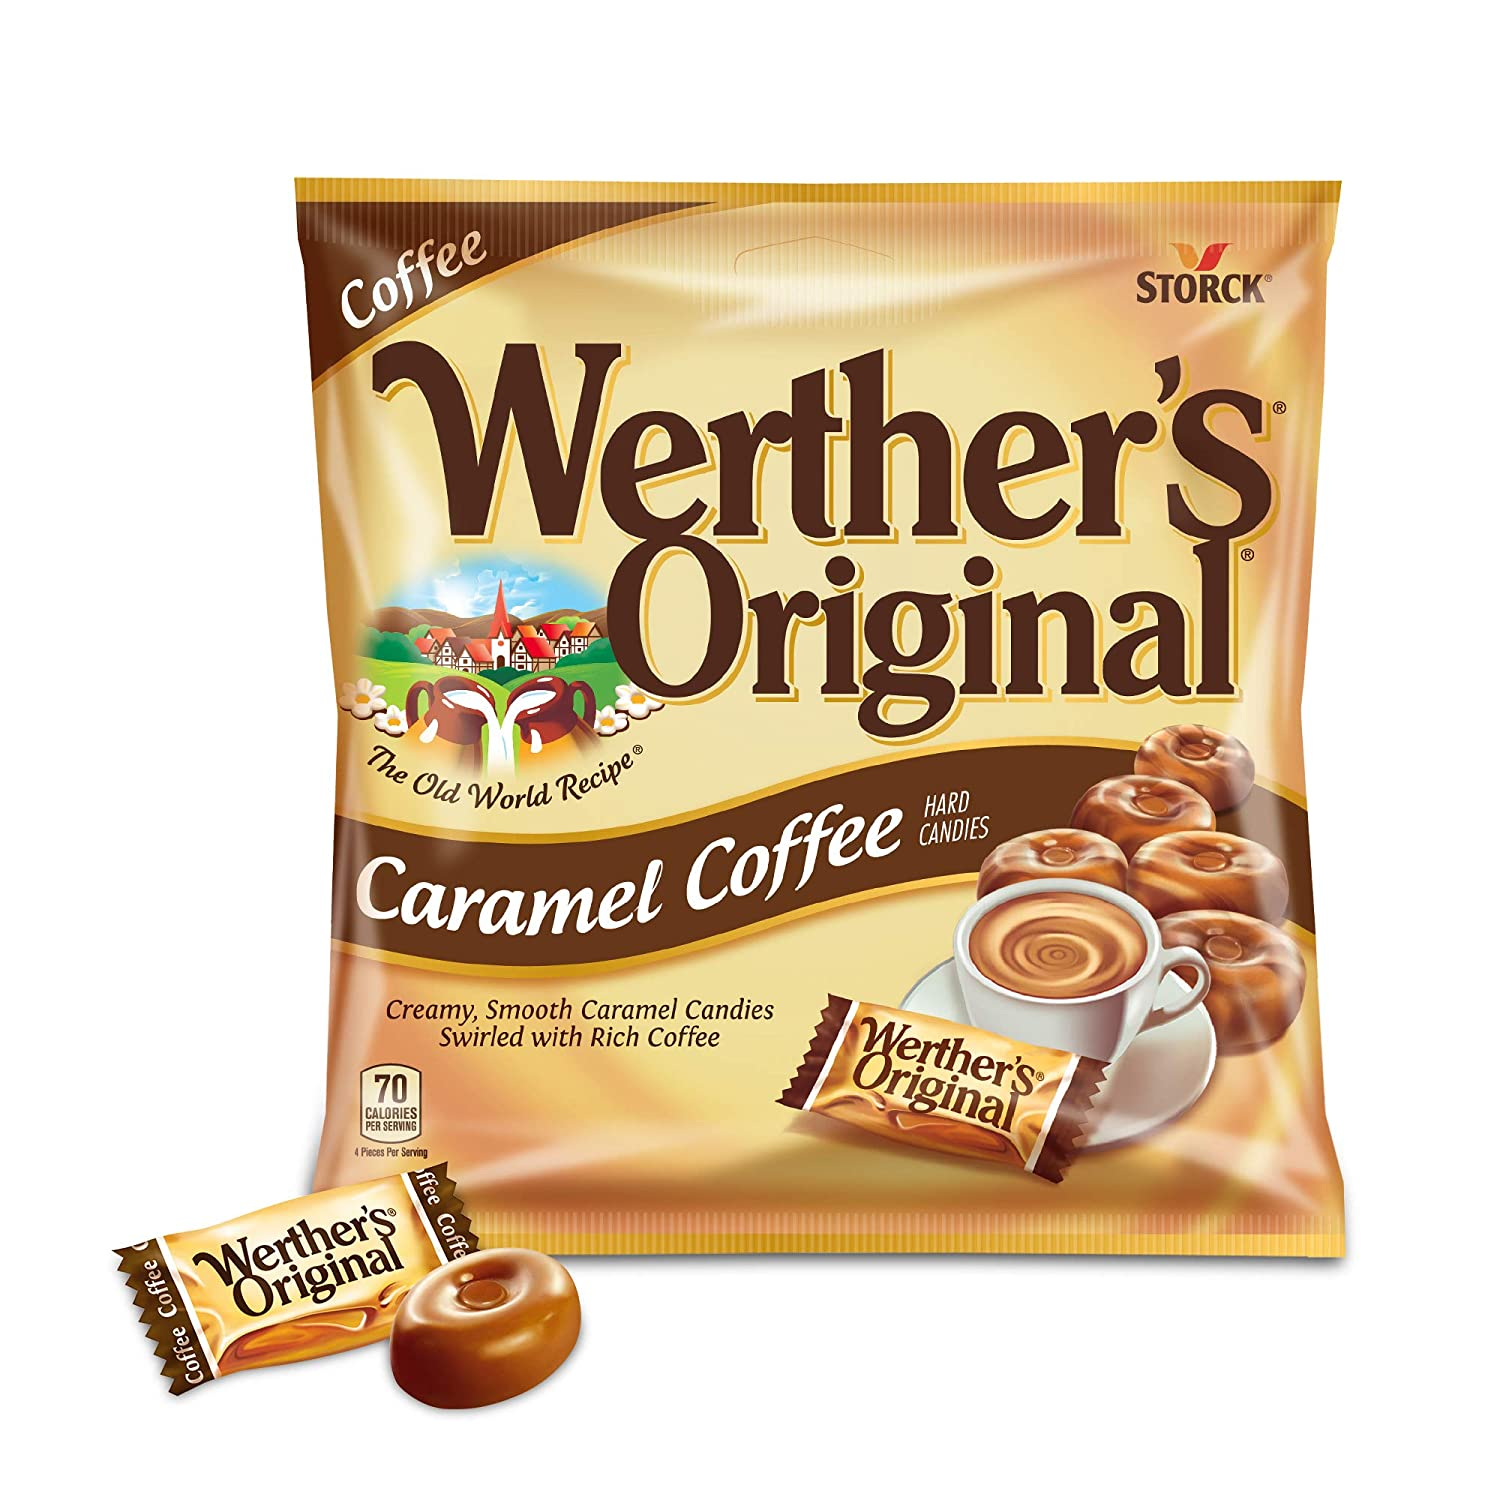 WERTHER'S ORIGINAL Caramel Coffee Hard Candy, 5.5 Ounce Bag (Pack of 12), Bulk Candy, Individually Wrapped Candy Caramels, Caramel Candy Sweets, Bag of Candy, Hard Candy Bulk